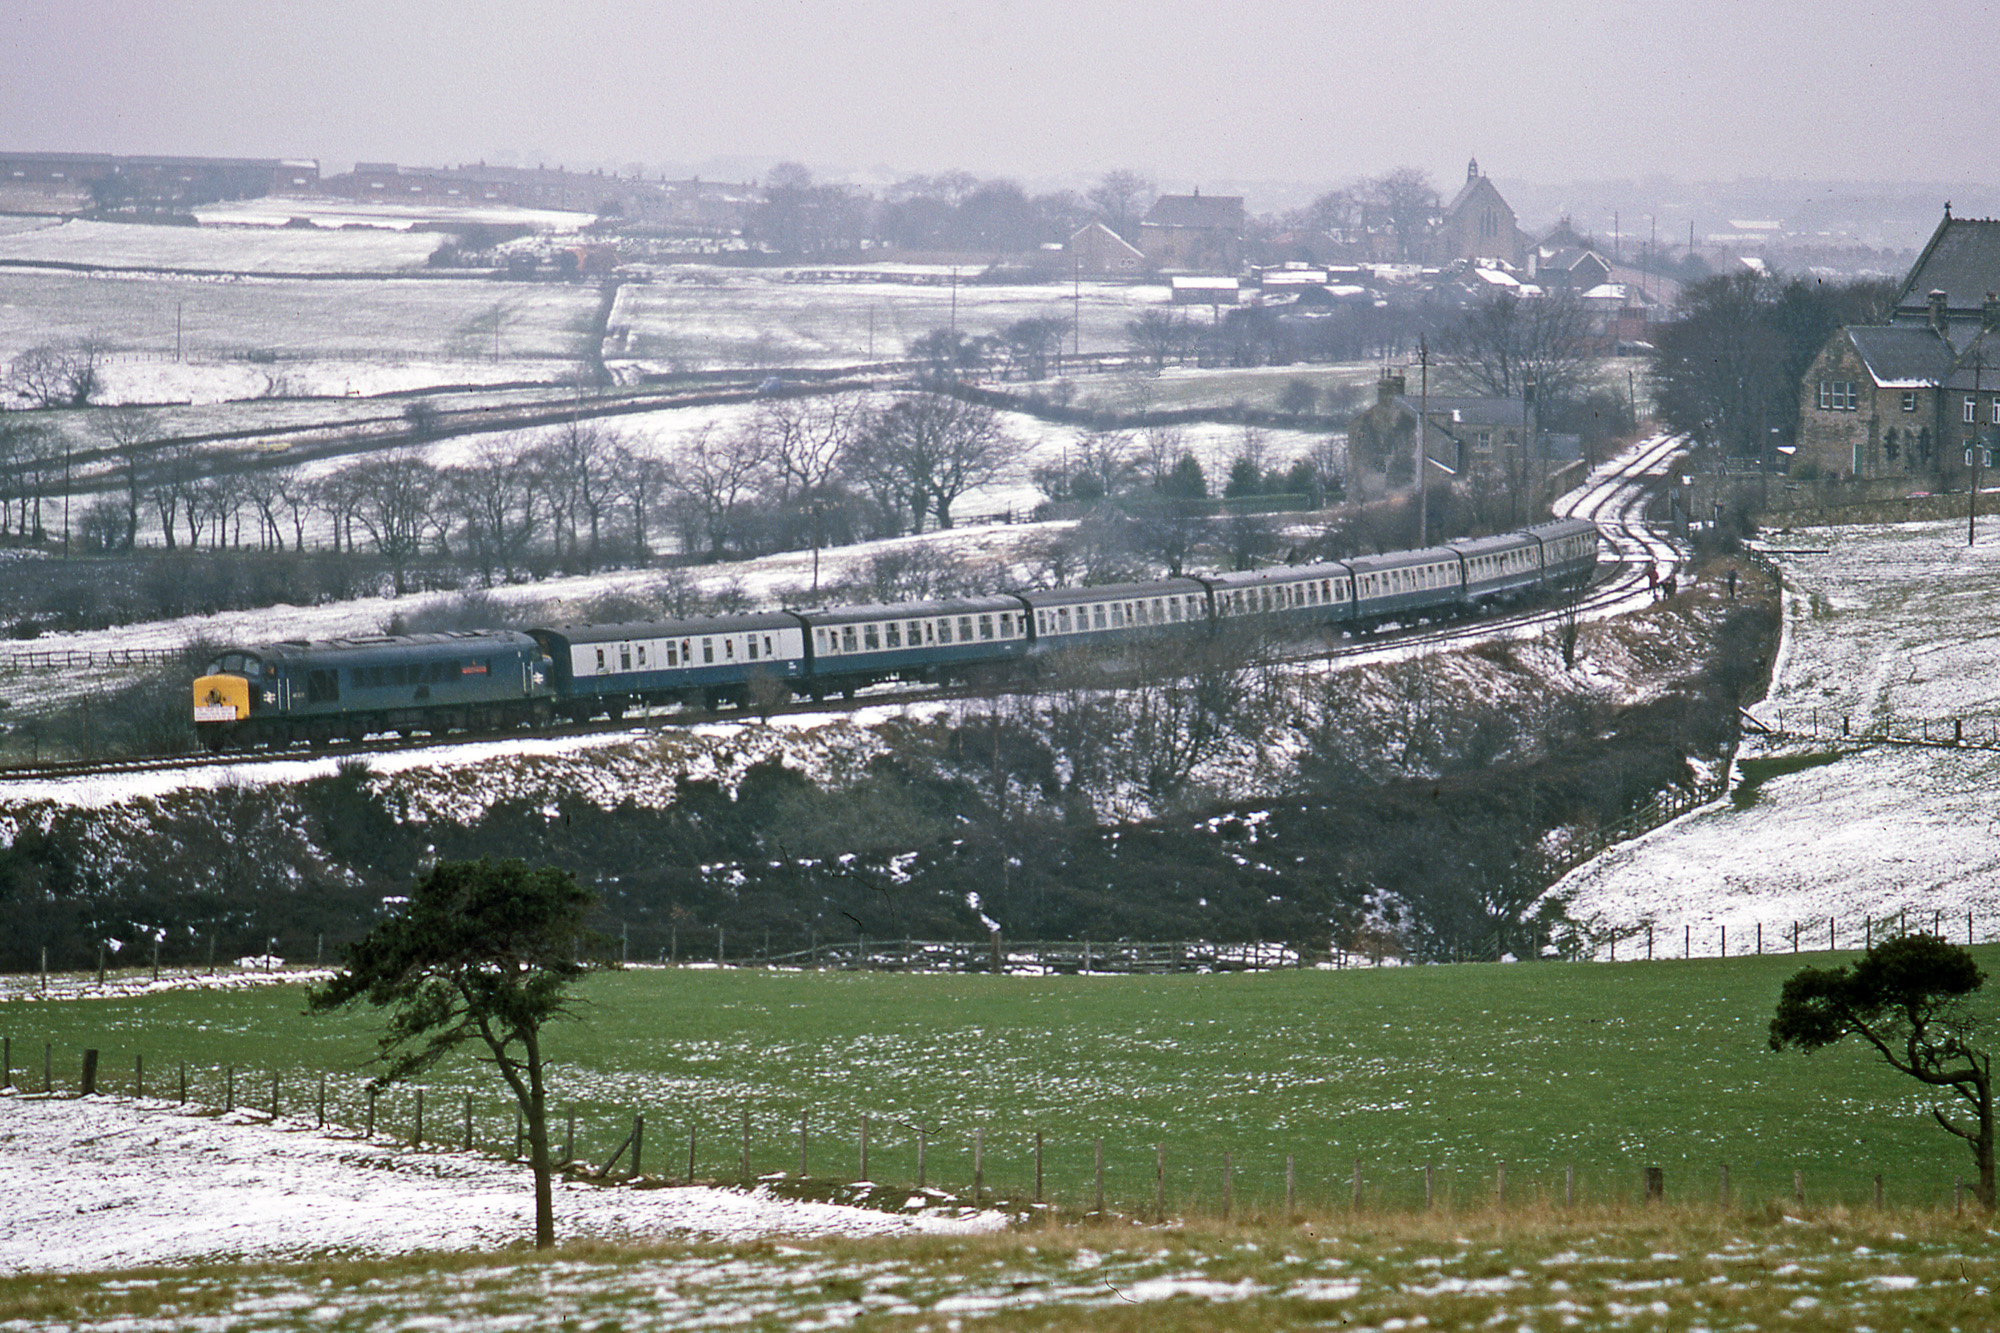 46026 and it's train round Brooms Curve between Annfield Plain and Leadgate. Photo copyright Stephen McGahon